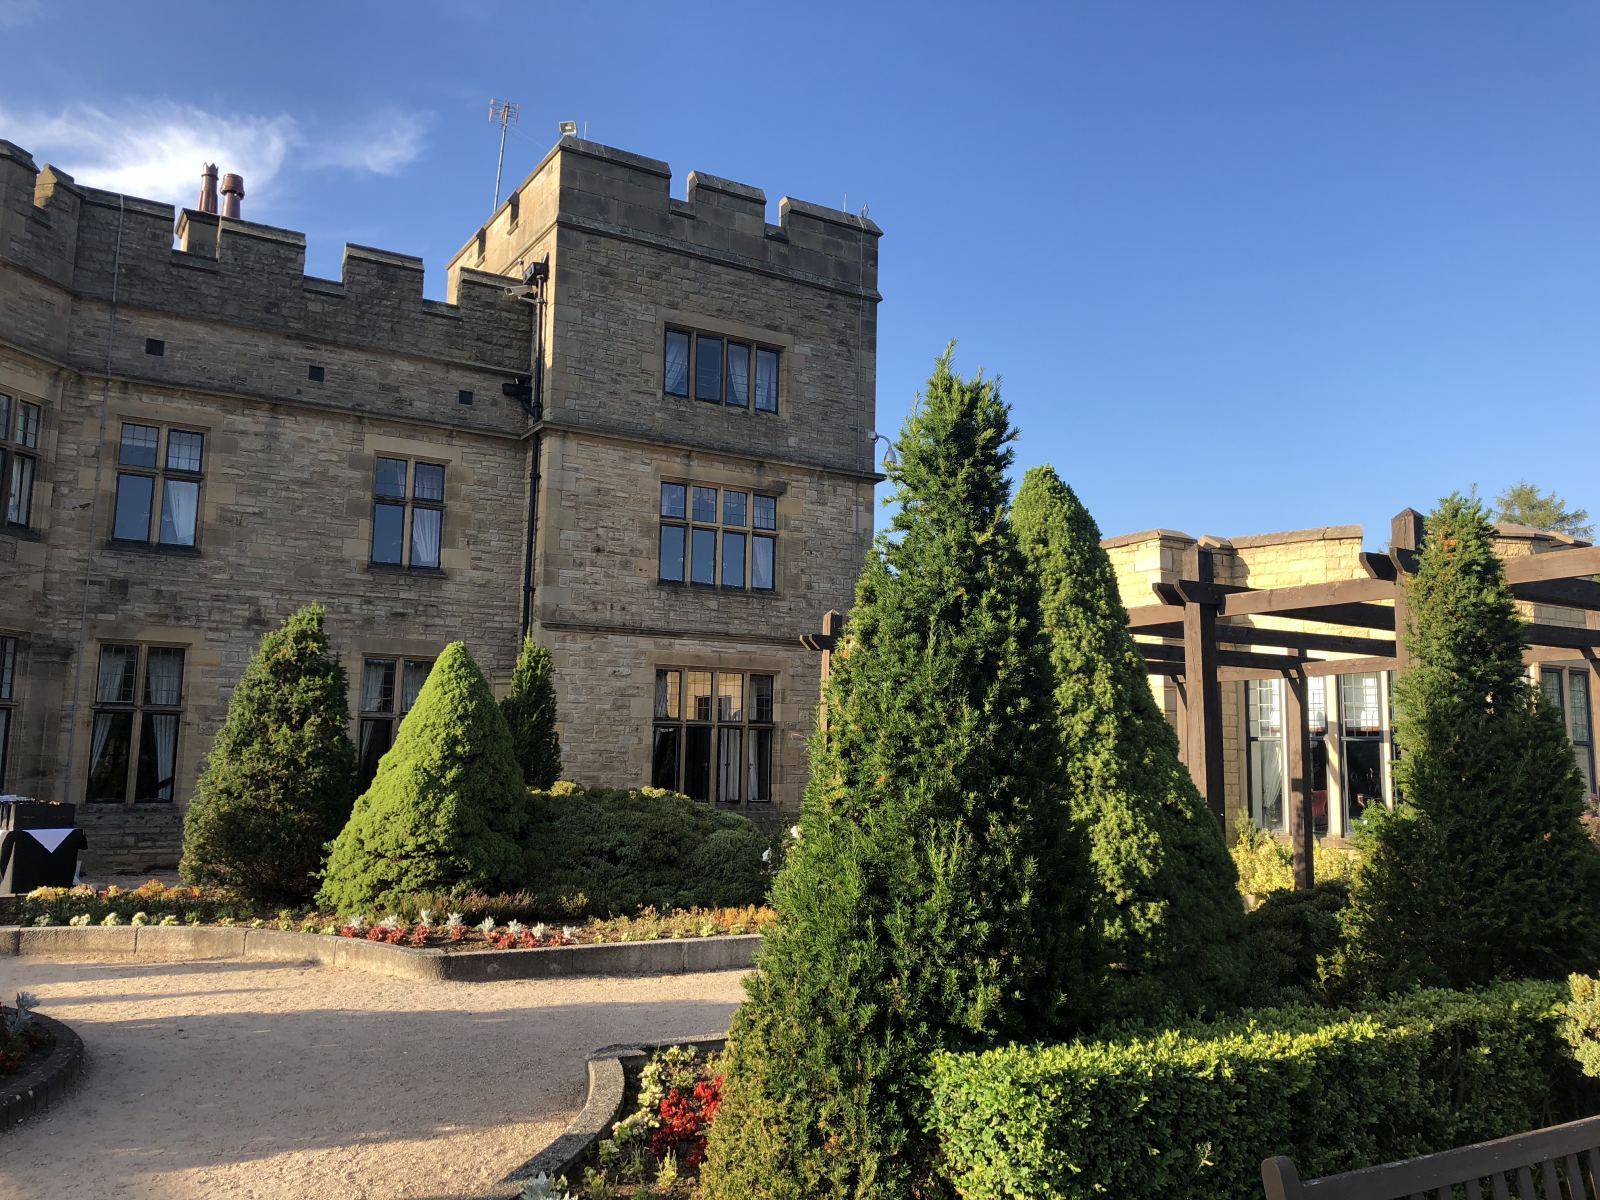 A landscape shot of the back of Slaley hall in northumberland with blue sky above